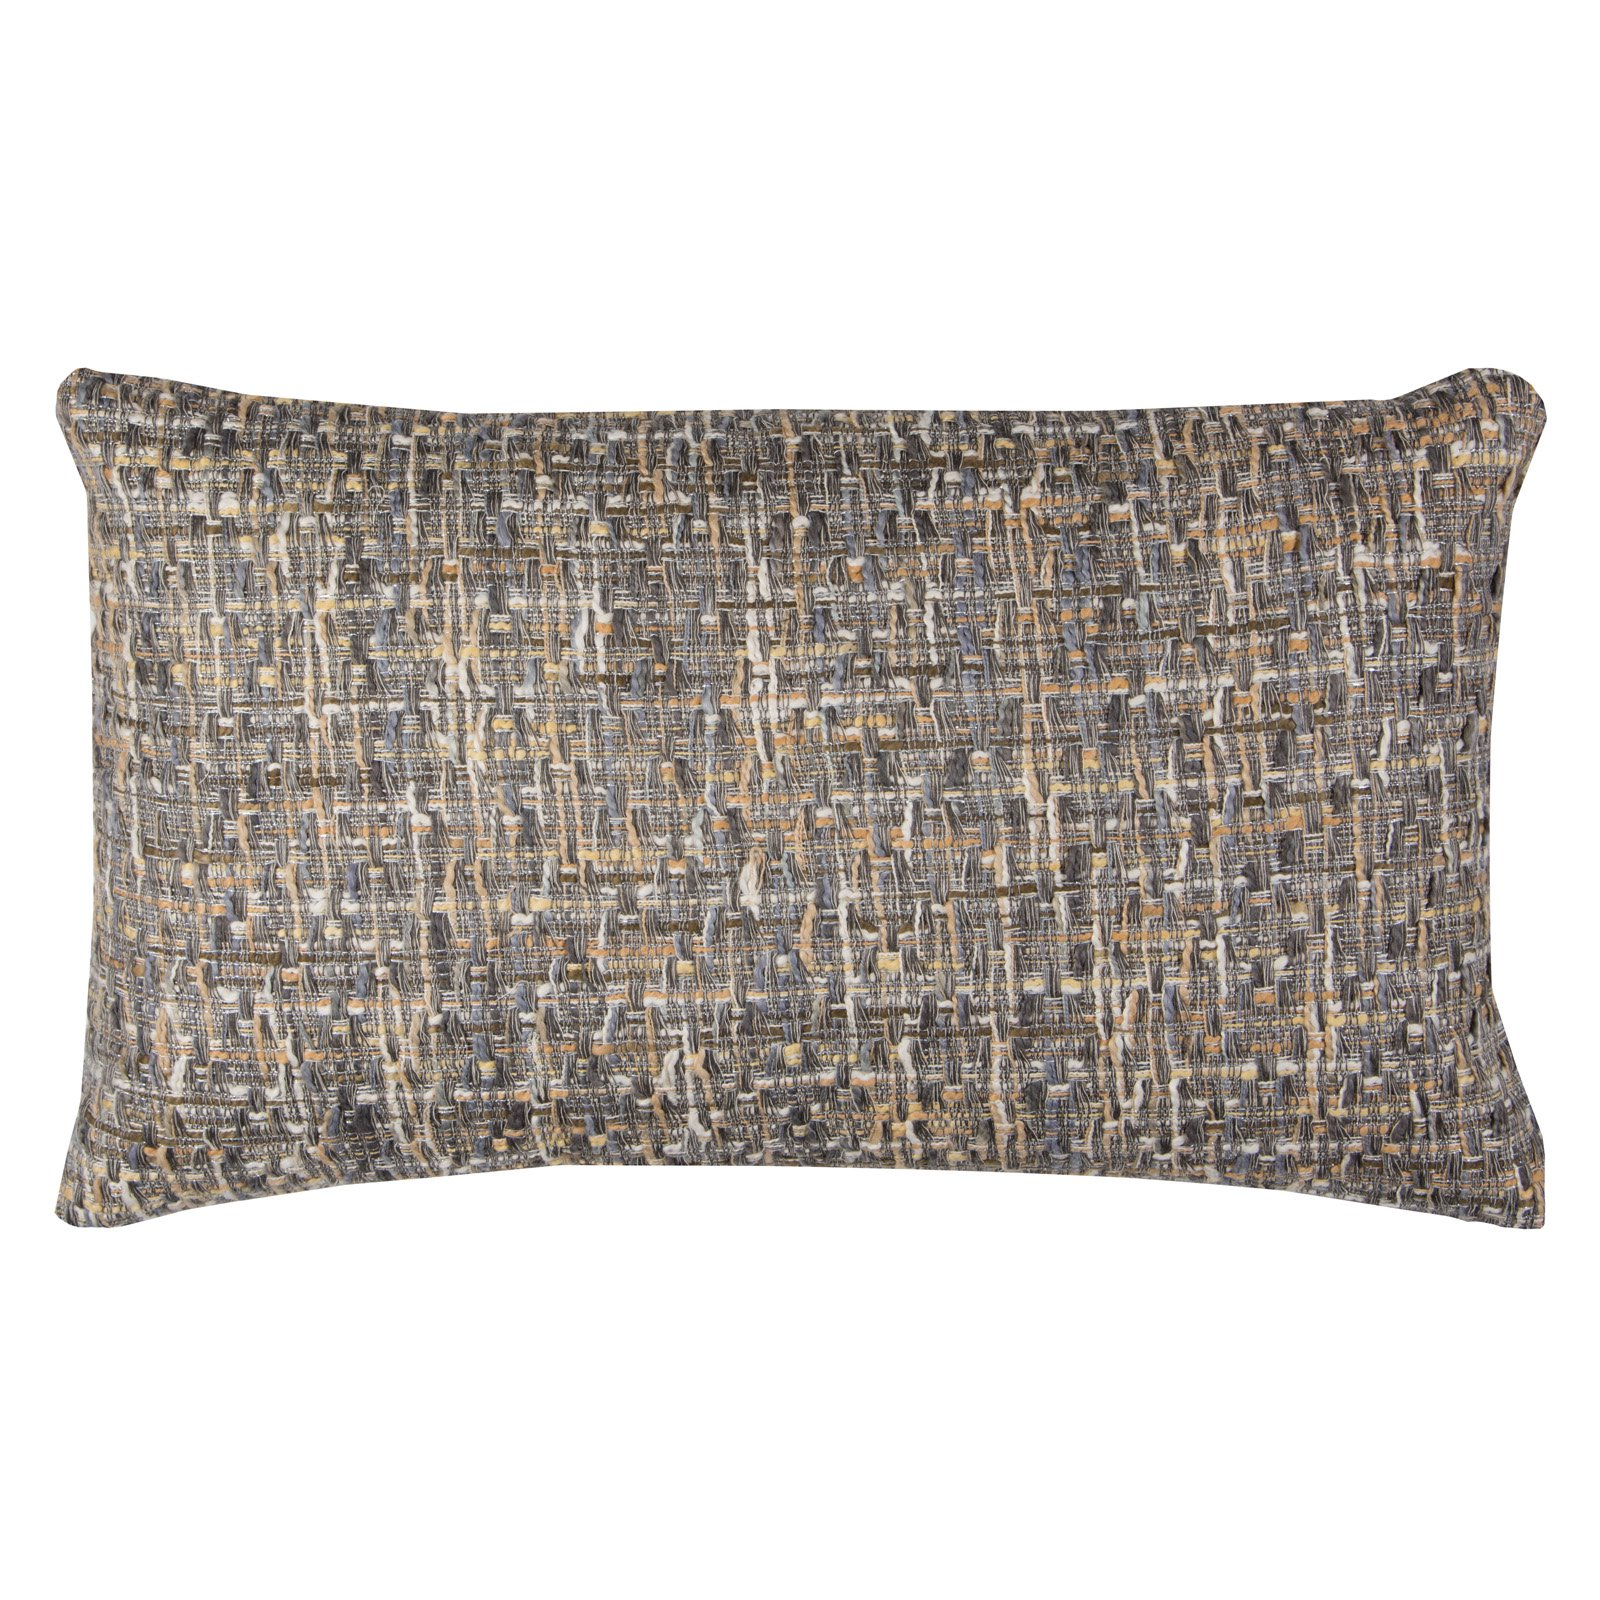 "Rizzy Home ALL OVER THREADED PATTERN14"" x 26""Cottondecorative filled pillow"